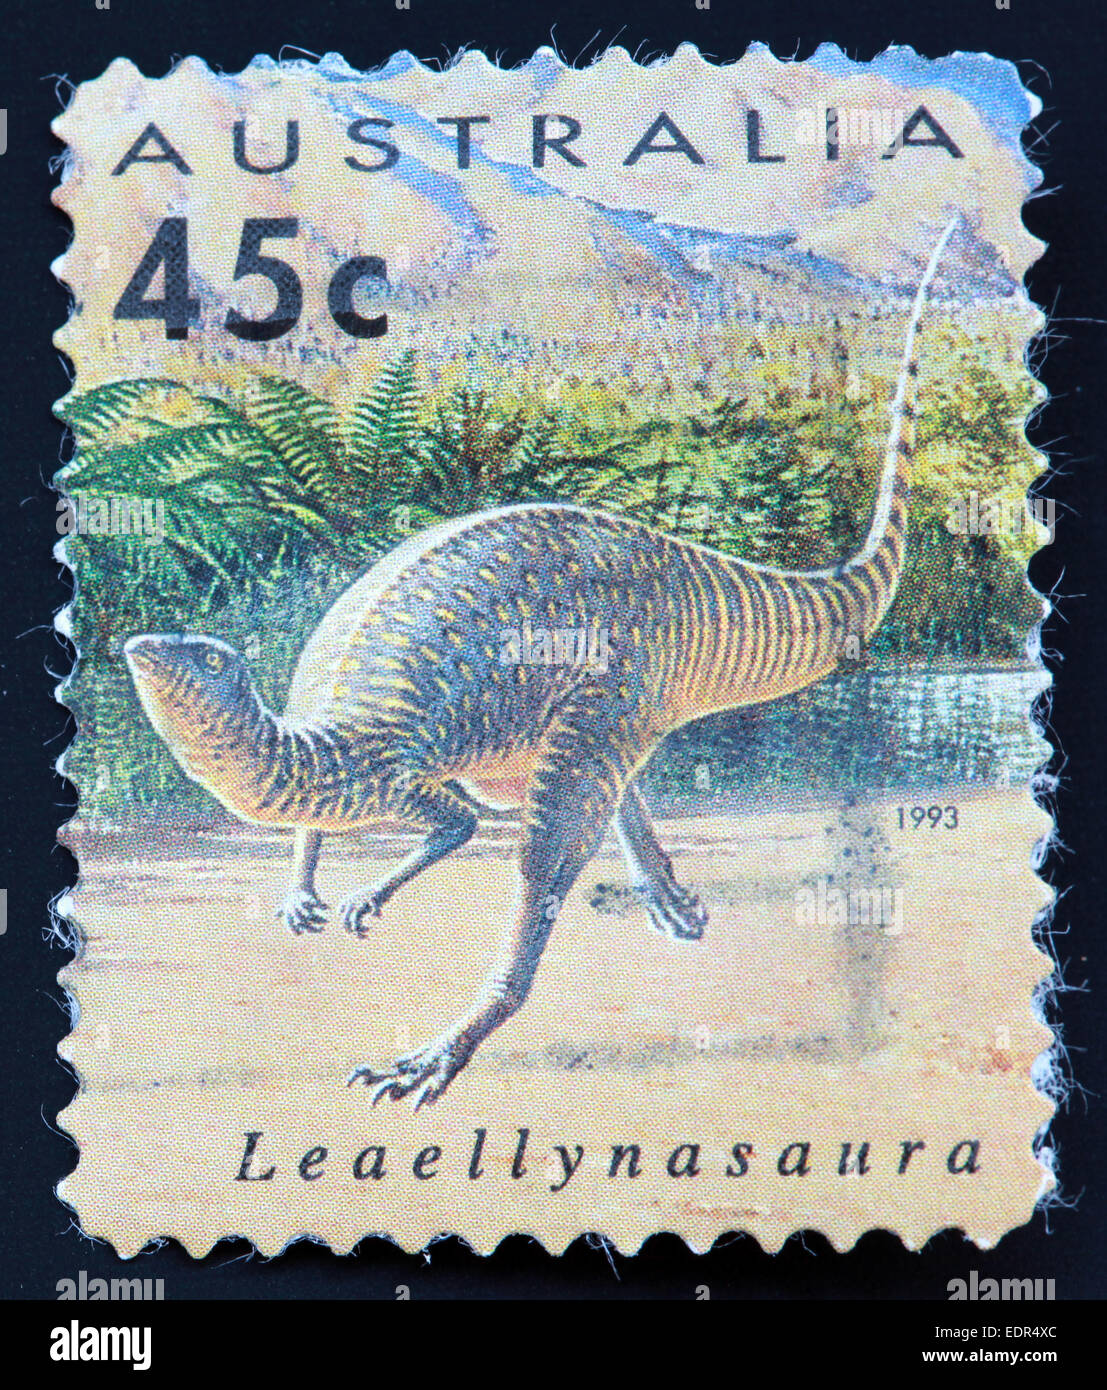 Dinosaurs,Dinosaur,animal,Leaellynasauras,Fossil,Leaellyns,lizard,small,herbivorous,ornithischian,cove,palaeontologist,Museum of Victoria,National Geographic Society,Used and Postmarked,Used,and,postmarked,perforated,Australia,stamp,Used,and,postmarked,Australia,Austrailian,Stamp,post,posting,ma,Gotonysmith,running,run,runs,Jurassic,walk,walking,walks,mark,postage,stamp,print,stamp,cancelled,canceled,stamp,payment,correspondence,postman,collection,collector,philately,philatelist,letter,price,history,retro,Australian,Vintage,delivery,date,relationship,communication,Oz,Australia,DownUnder,classic rare unique Austrailian financial,investment,invest,value,British,empire,nation,canceled,printed on black background,close-up,closeup,close,up,sent,send,philately,mailing,shipping,postoffice,office,isolated,circa,special,colour,color,postmarked,marked,airmail,aged,antique,retro,cutting,historic,old,stamps,collection,stamp collection,album,Timbre,Sello,Stempel,Selo,Down Under,Black background